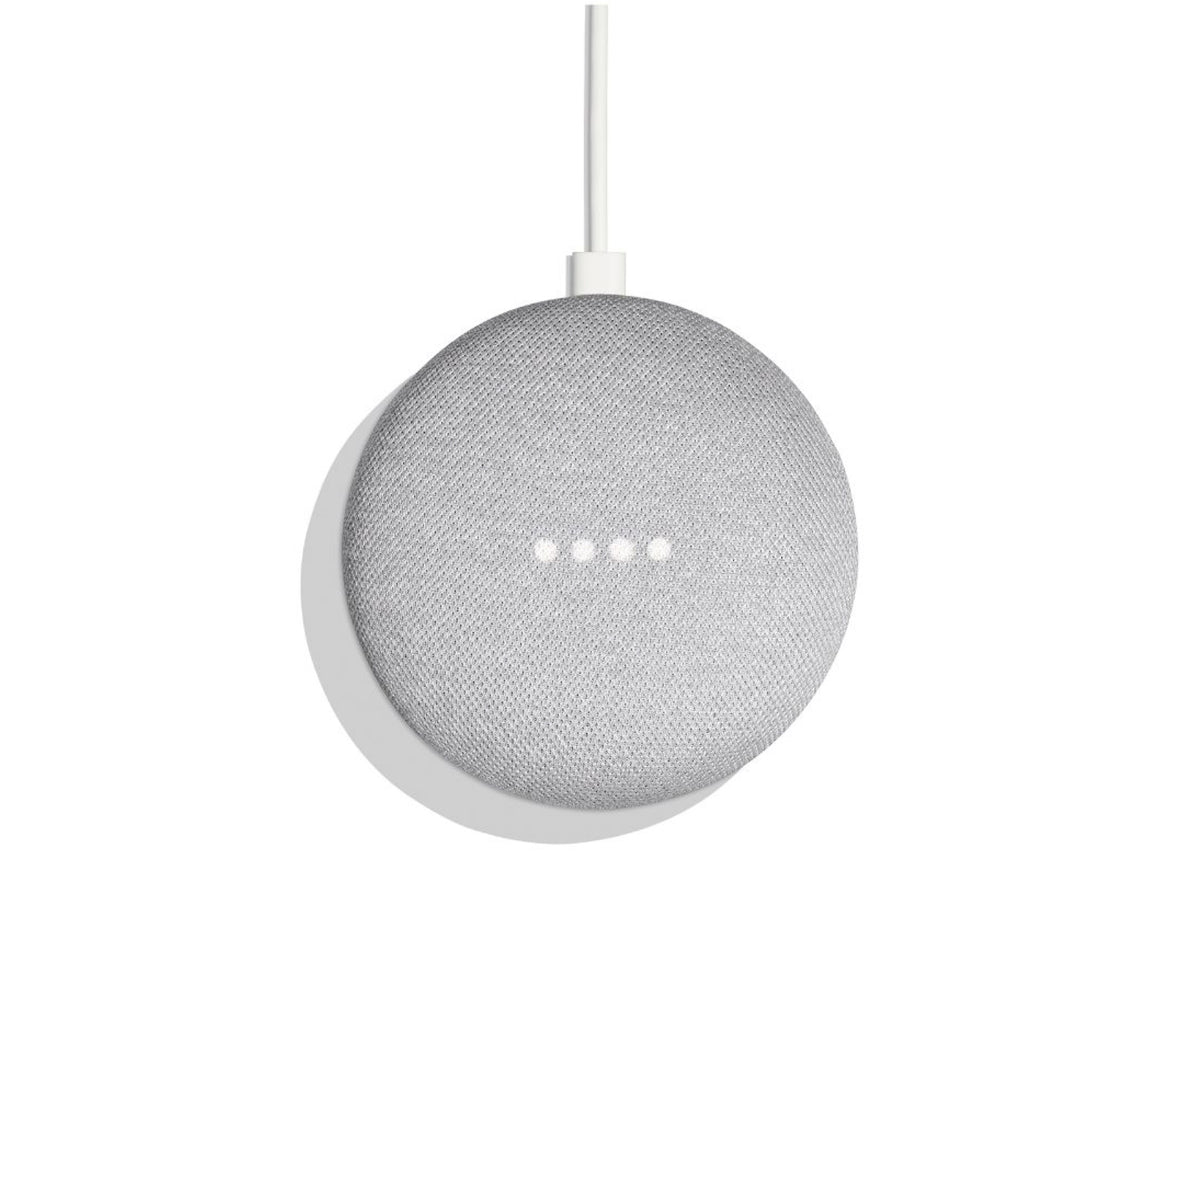 Google Home Mini - top